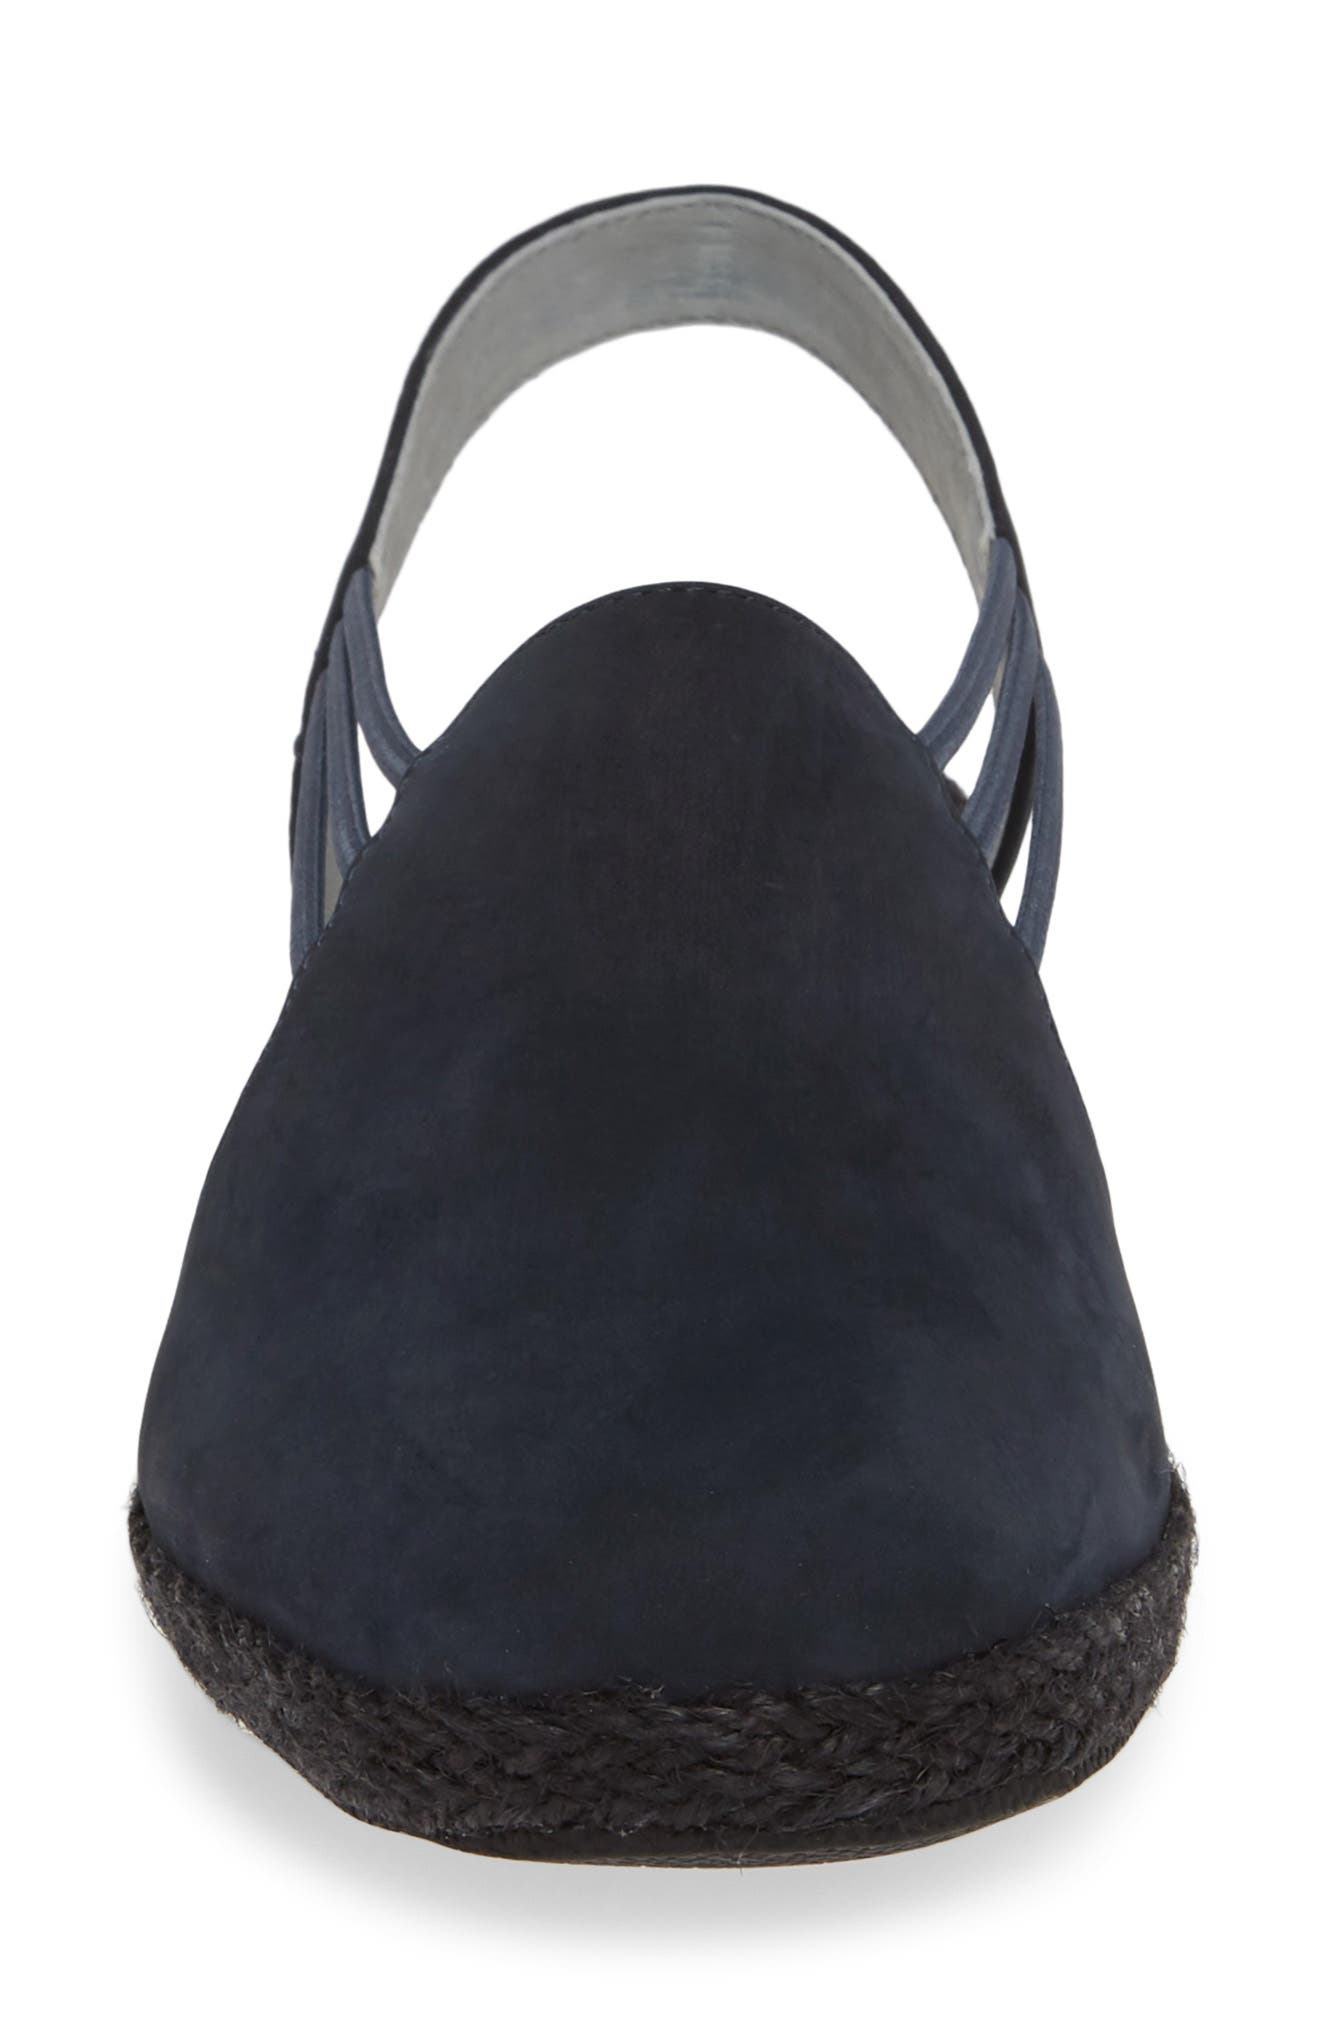 DAVID TATE,                             'Nelly' Slingback Wedge Sandal,                             Alternate thumbnail 4, color,                             NAVY NUBUCK LEATHER